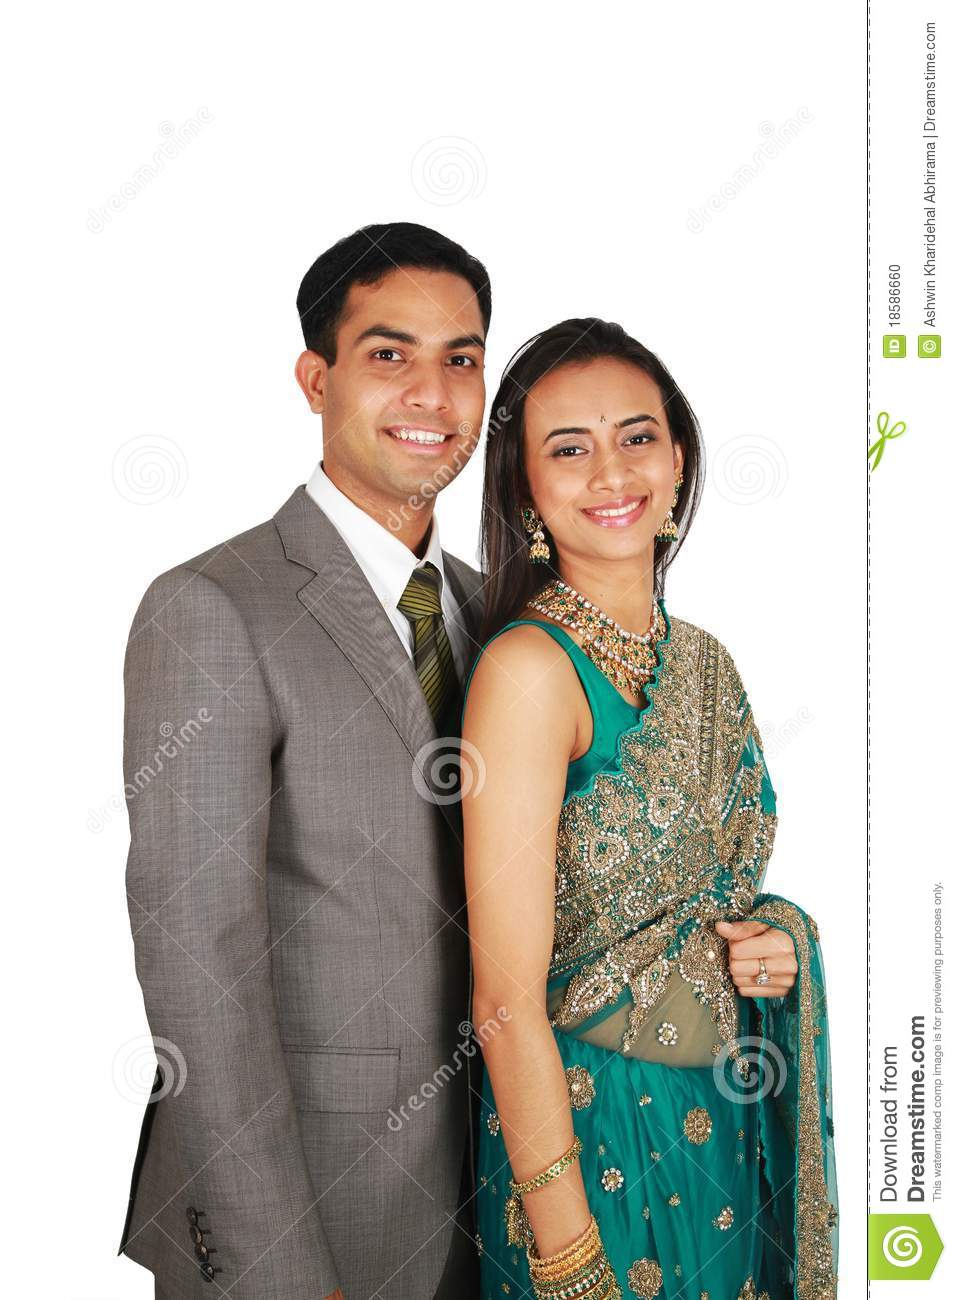 elfrida hindu dating site Hindu dating website - nowadays online dating become simple, fast and easy, all you need to do is sign up to our site and start browsing for local singles.